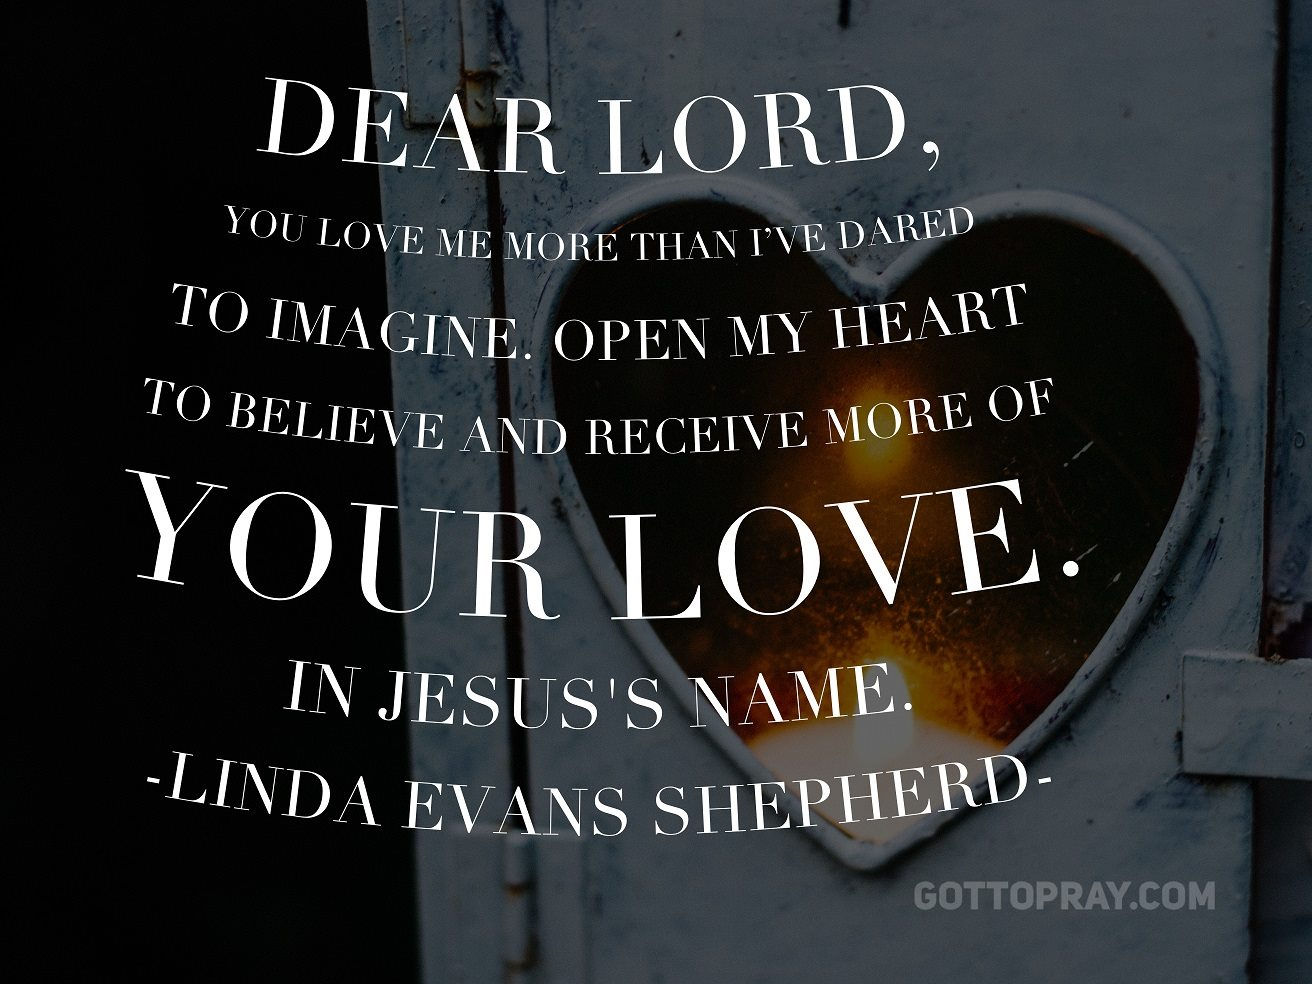 Lord open my heart to my believe and receive more of your love.